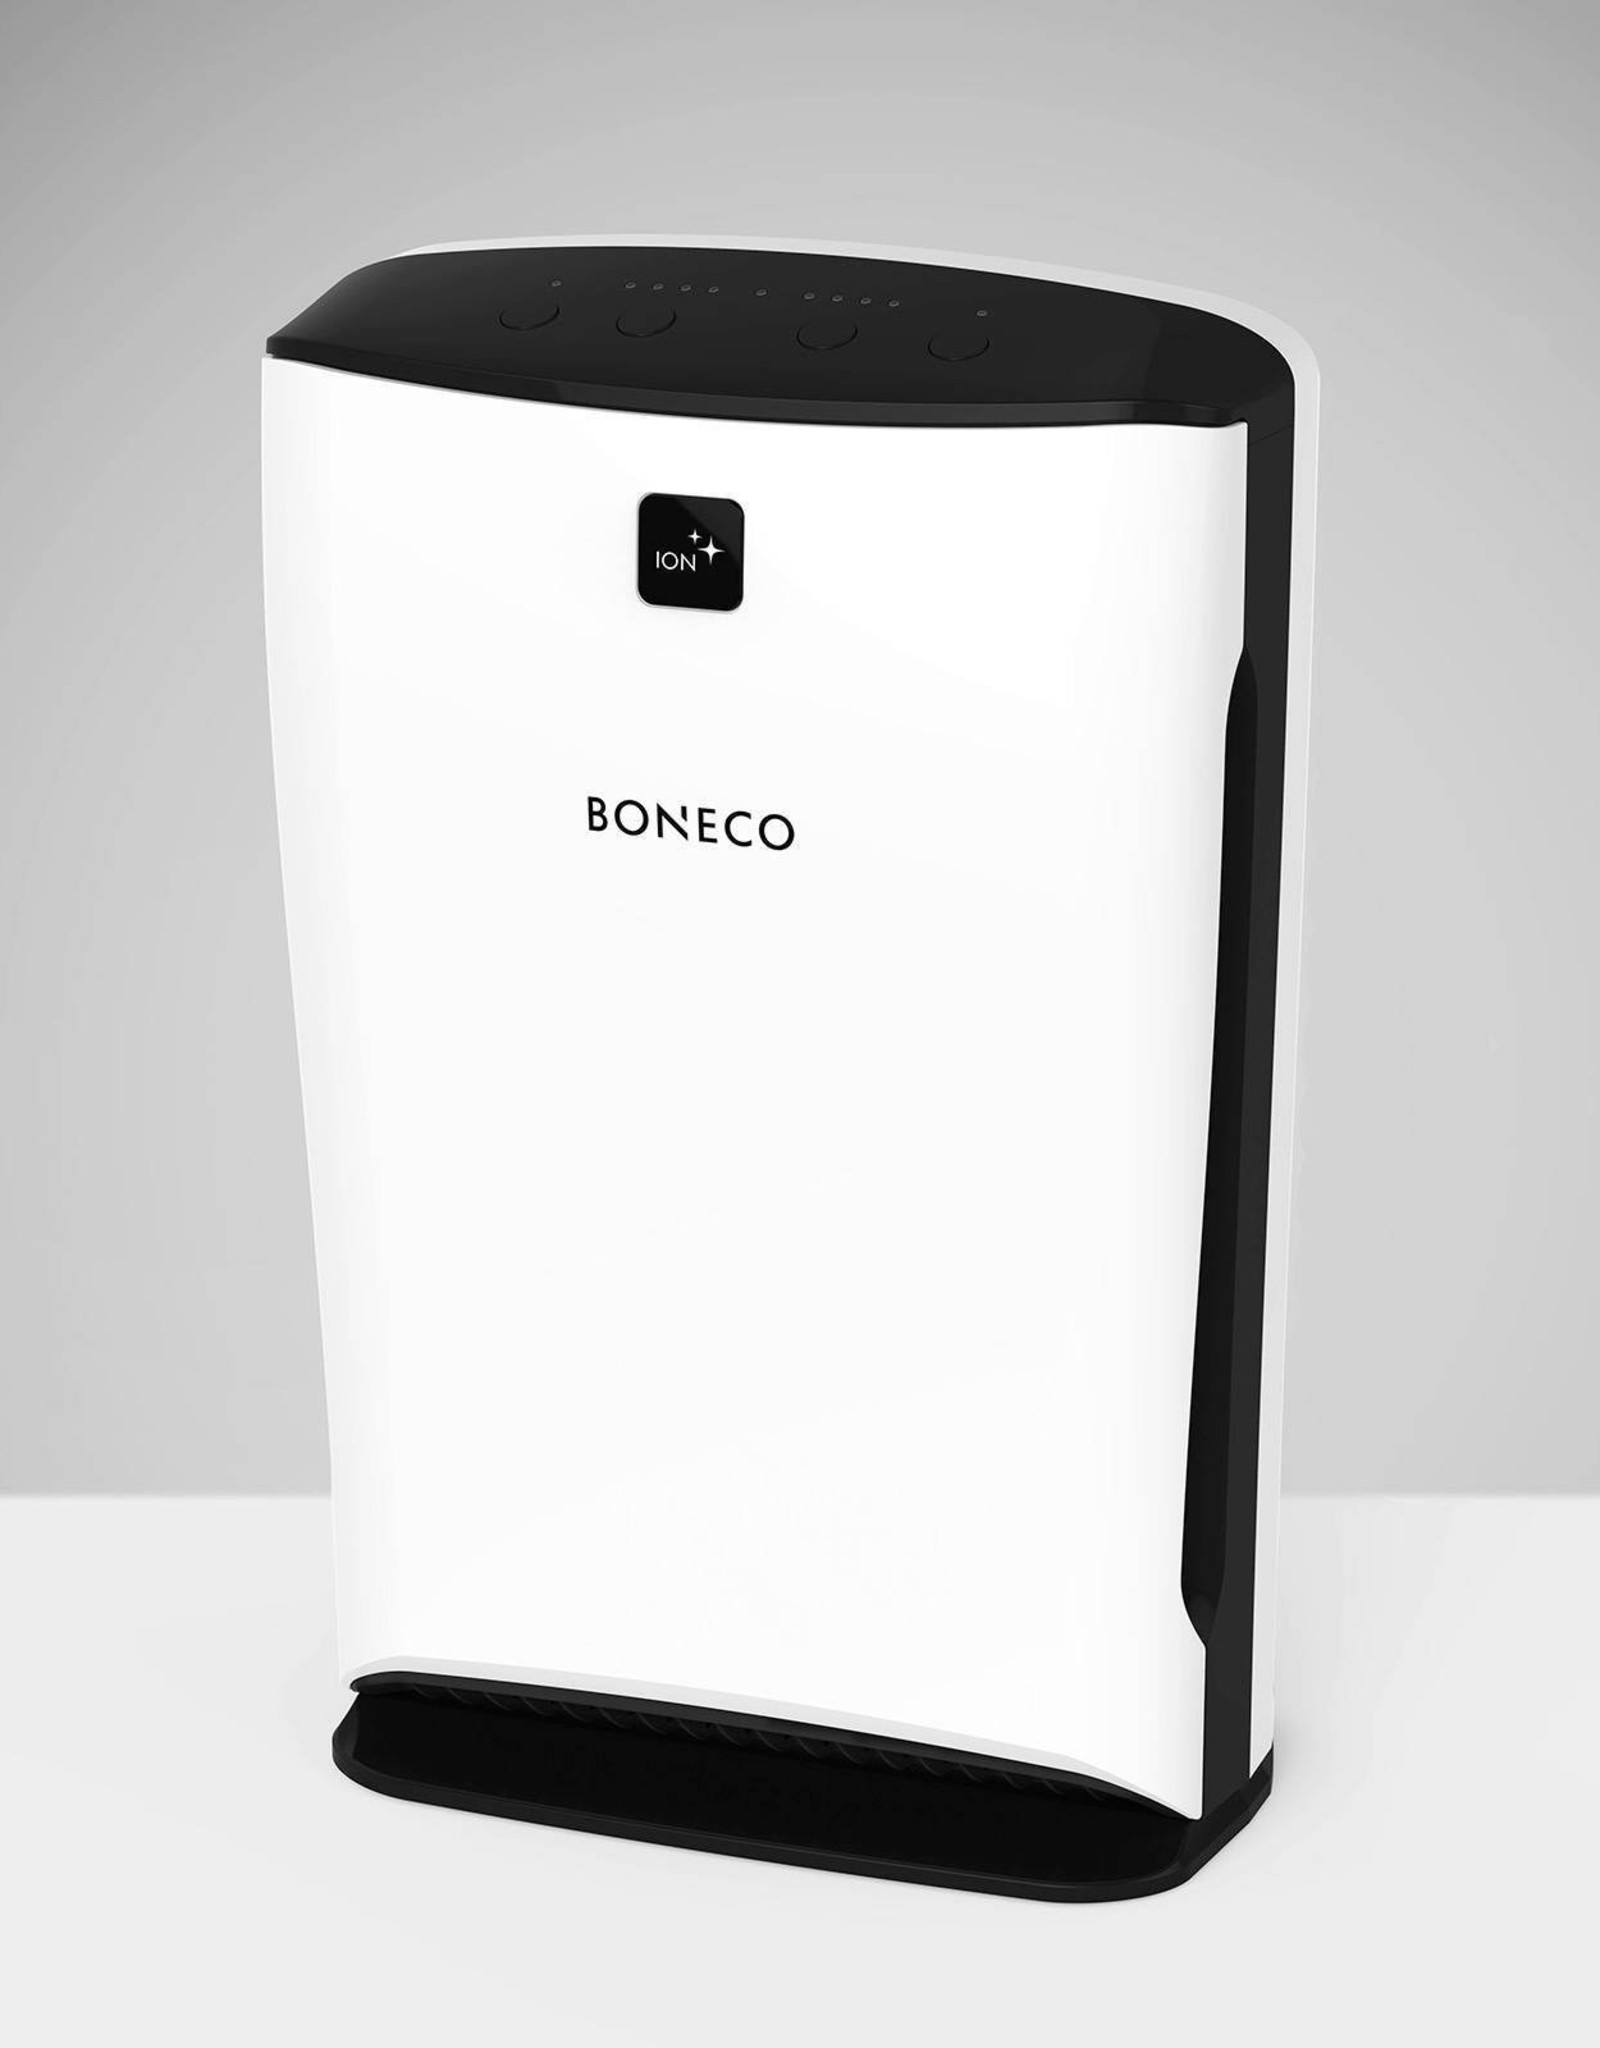 Boneco Boneco Air cleaner with Ioniser for 40 m2